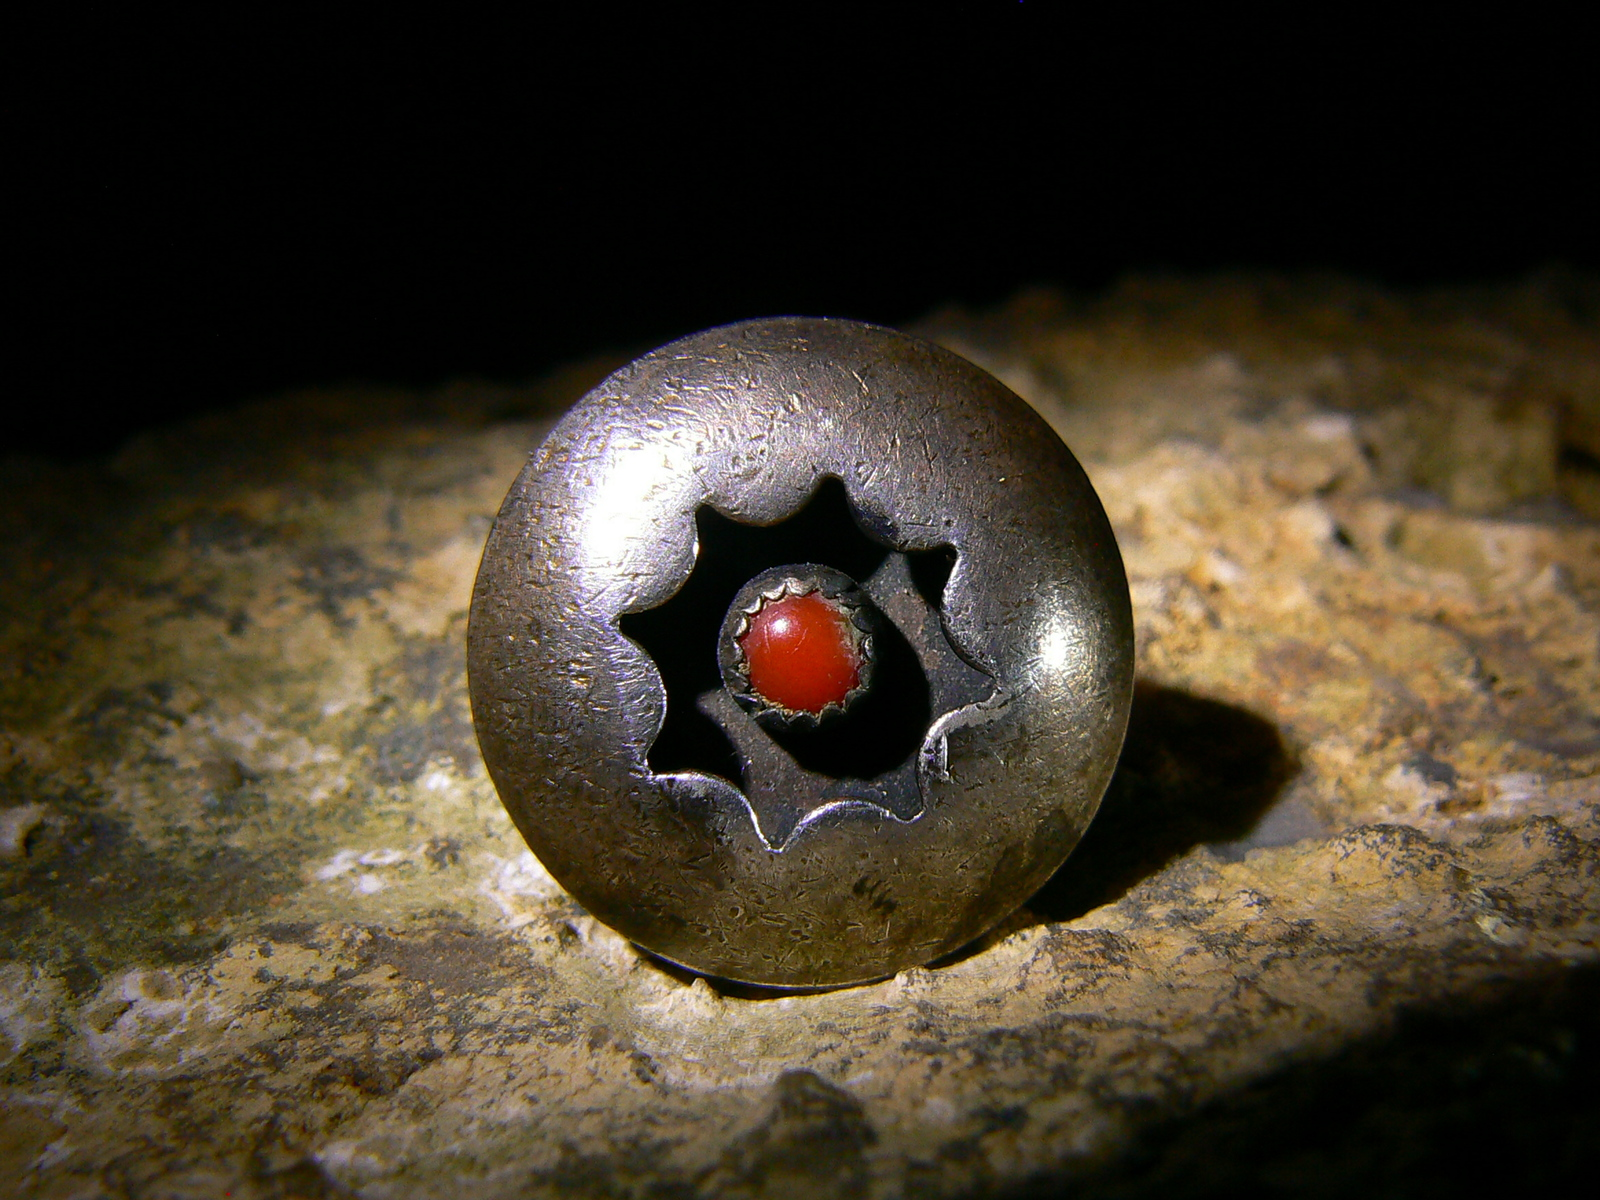 THE KING of HELL BLACK MAGIC CROWLEY DEMON DJINN HAUNTED ANTIQUE POWER RING